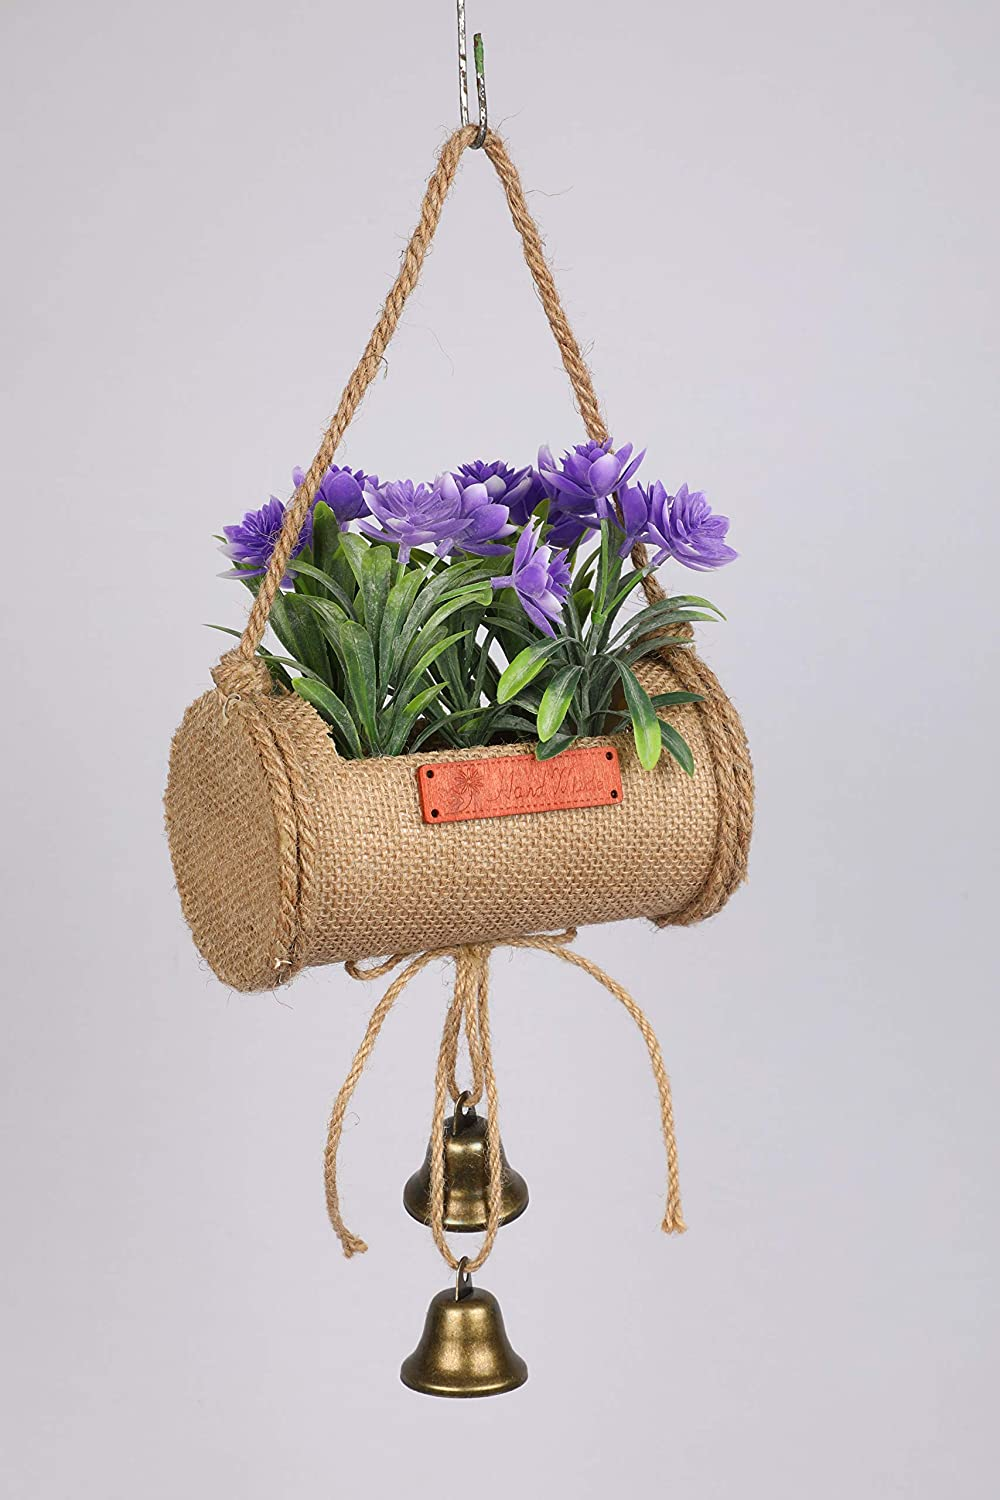 Beautiful Artificial Bonsai Plants  in Jute Duffle with Bells